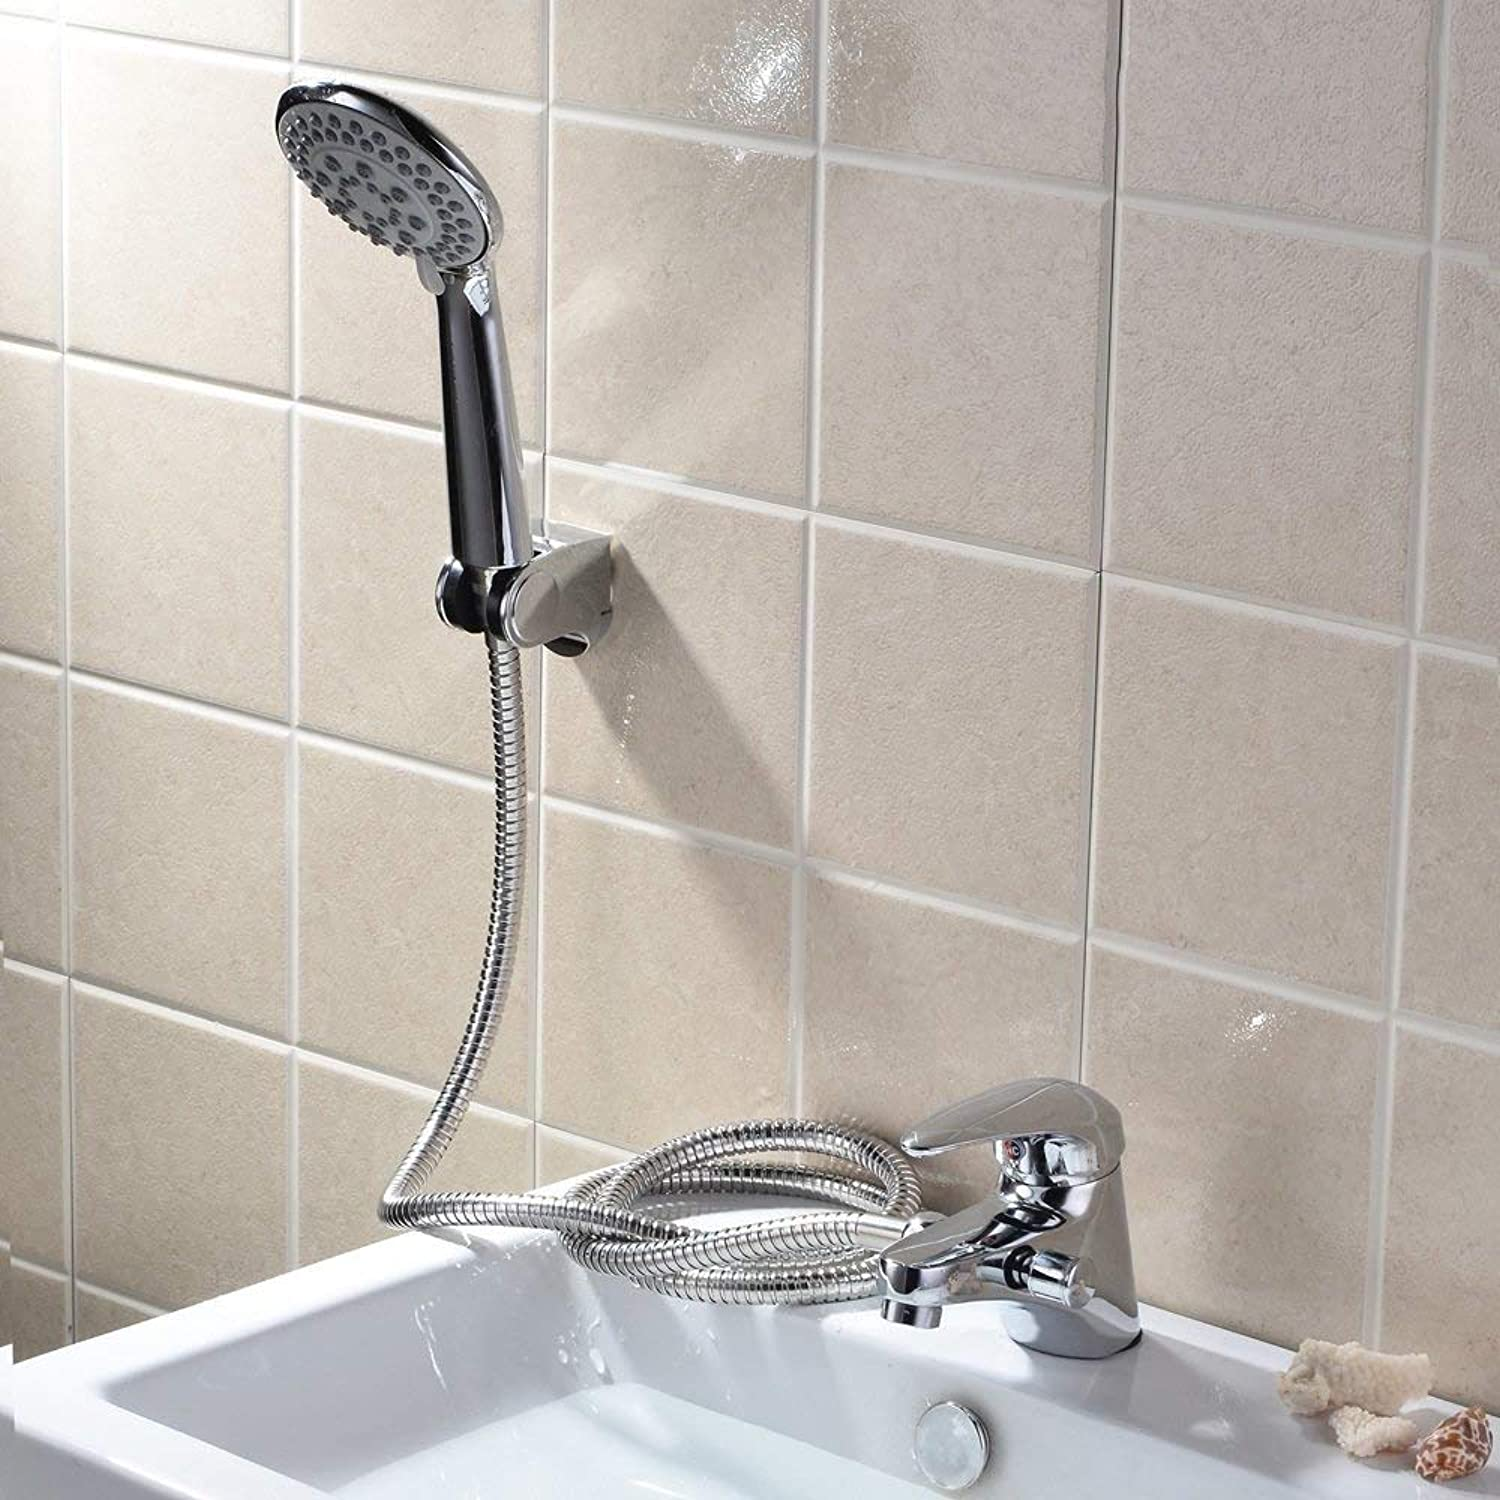 High Quality Brass Faucet with hot and Cold Faucet High Quality Faucet with Shower Faucet